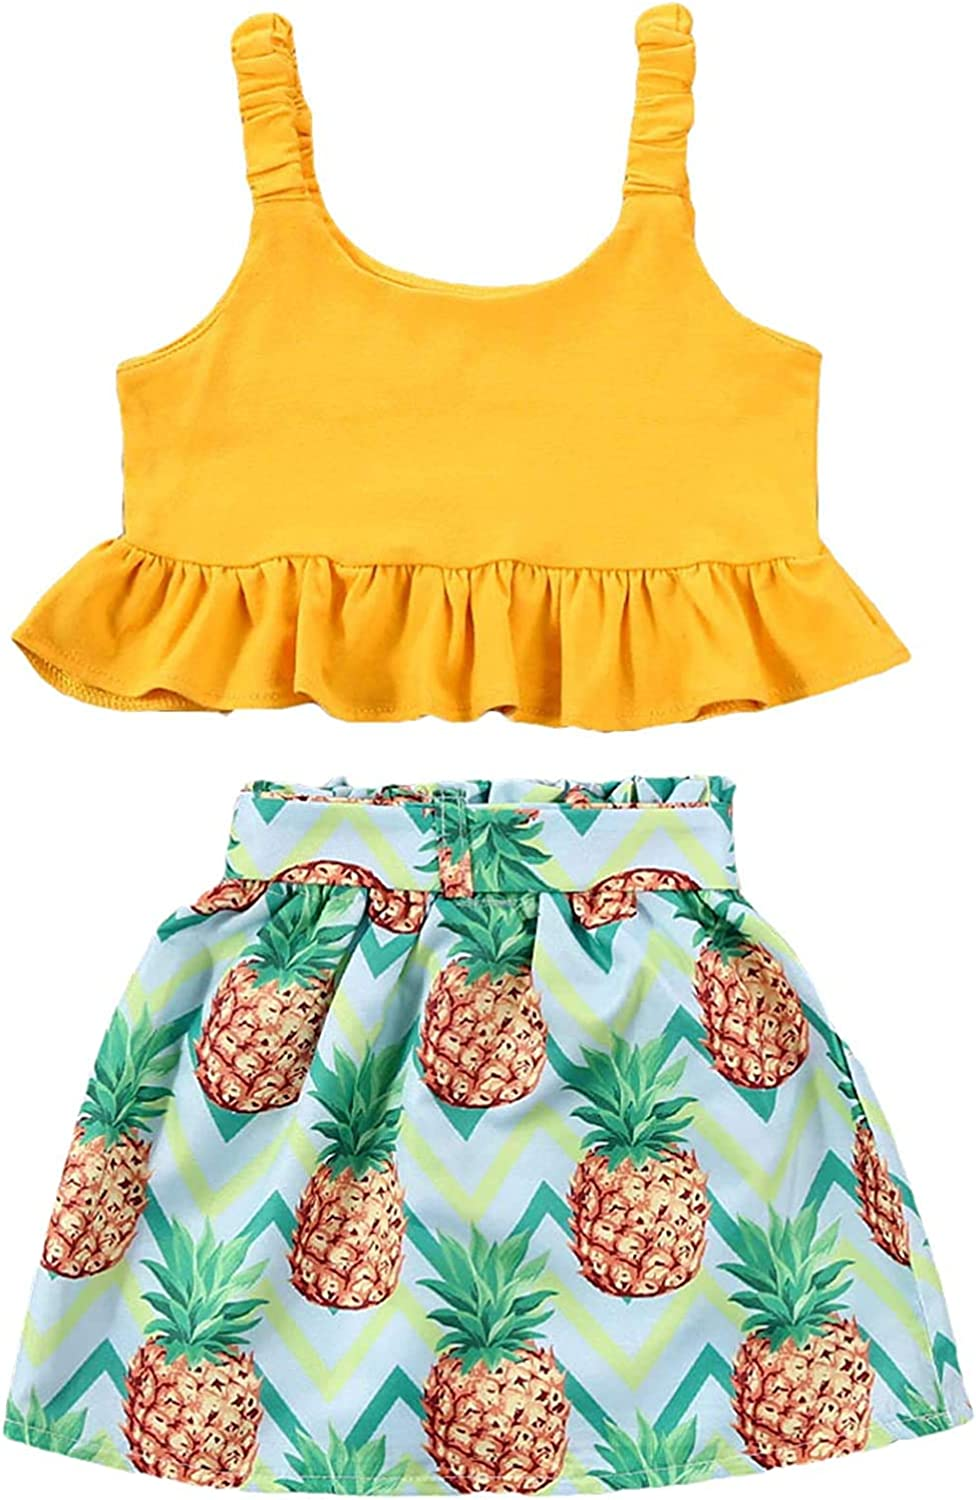 Toddler Baby Girl Skirts Outfits Ruffled Strap Crop Top + Pineapple Shorts Skirts Two Piece Summer Clothes Set